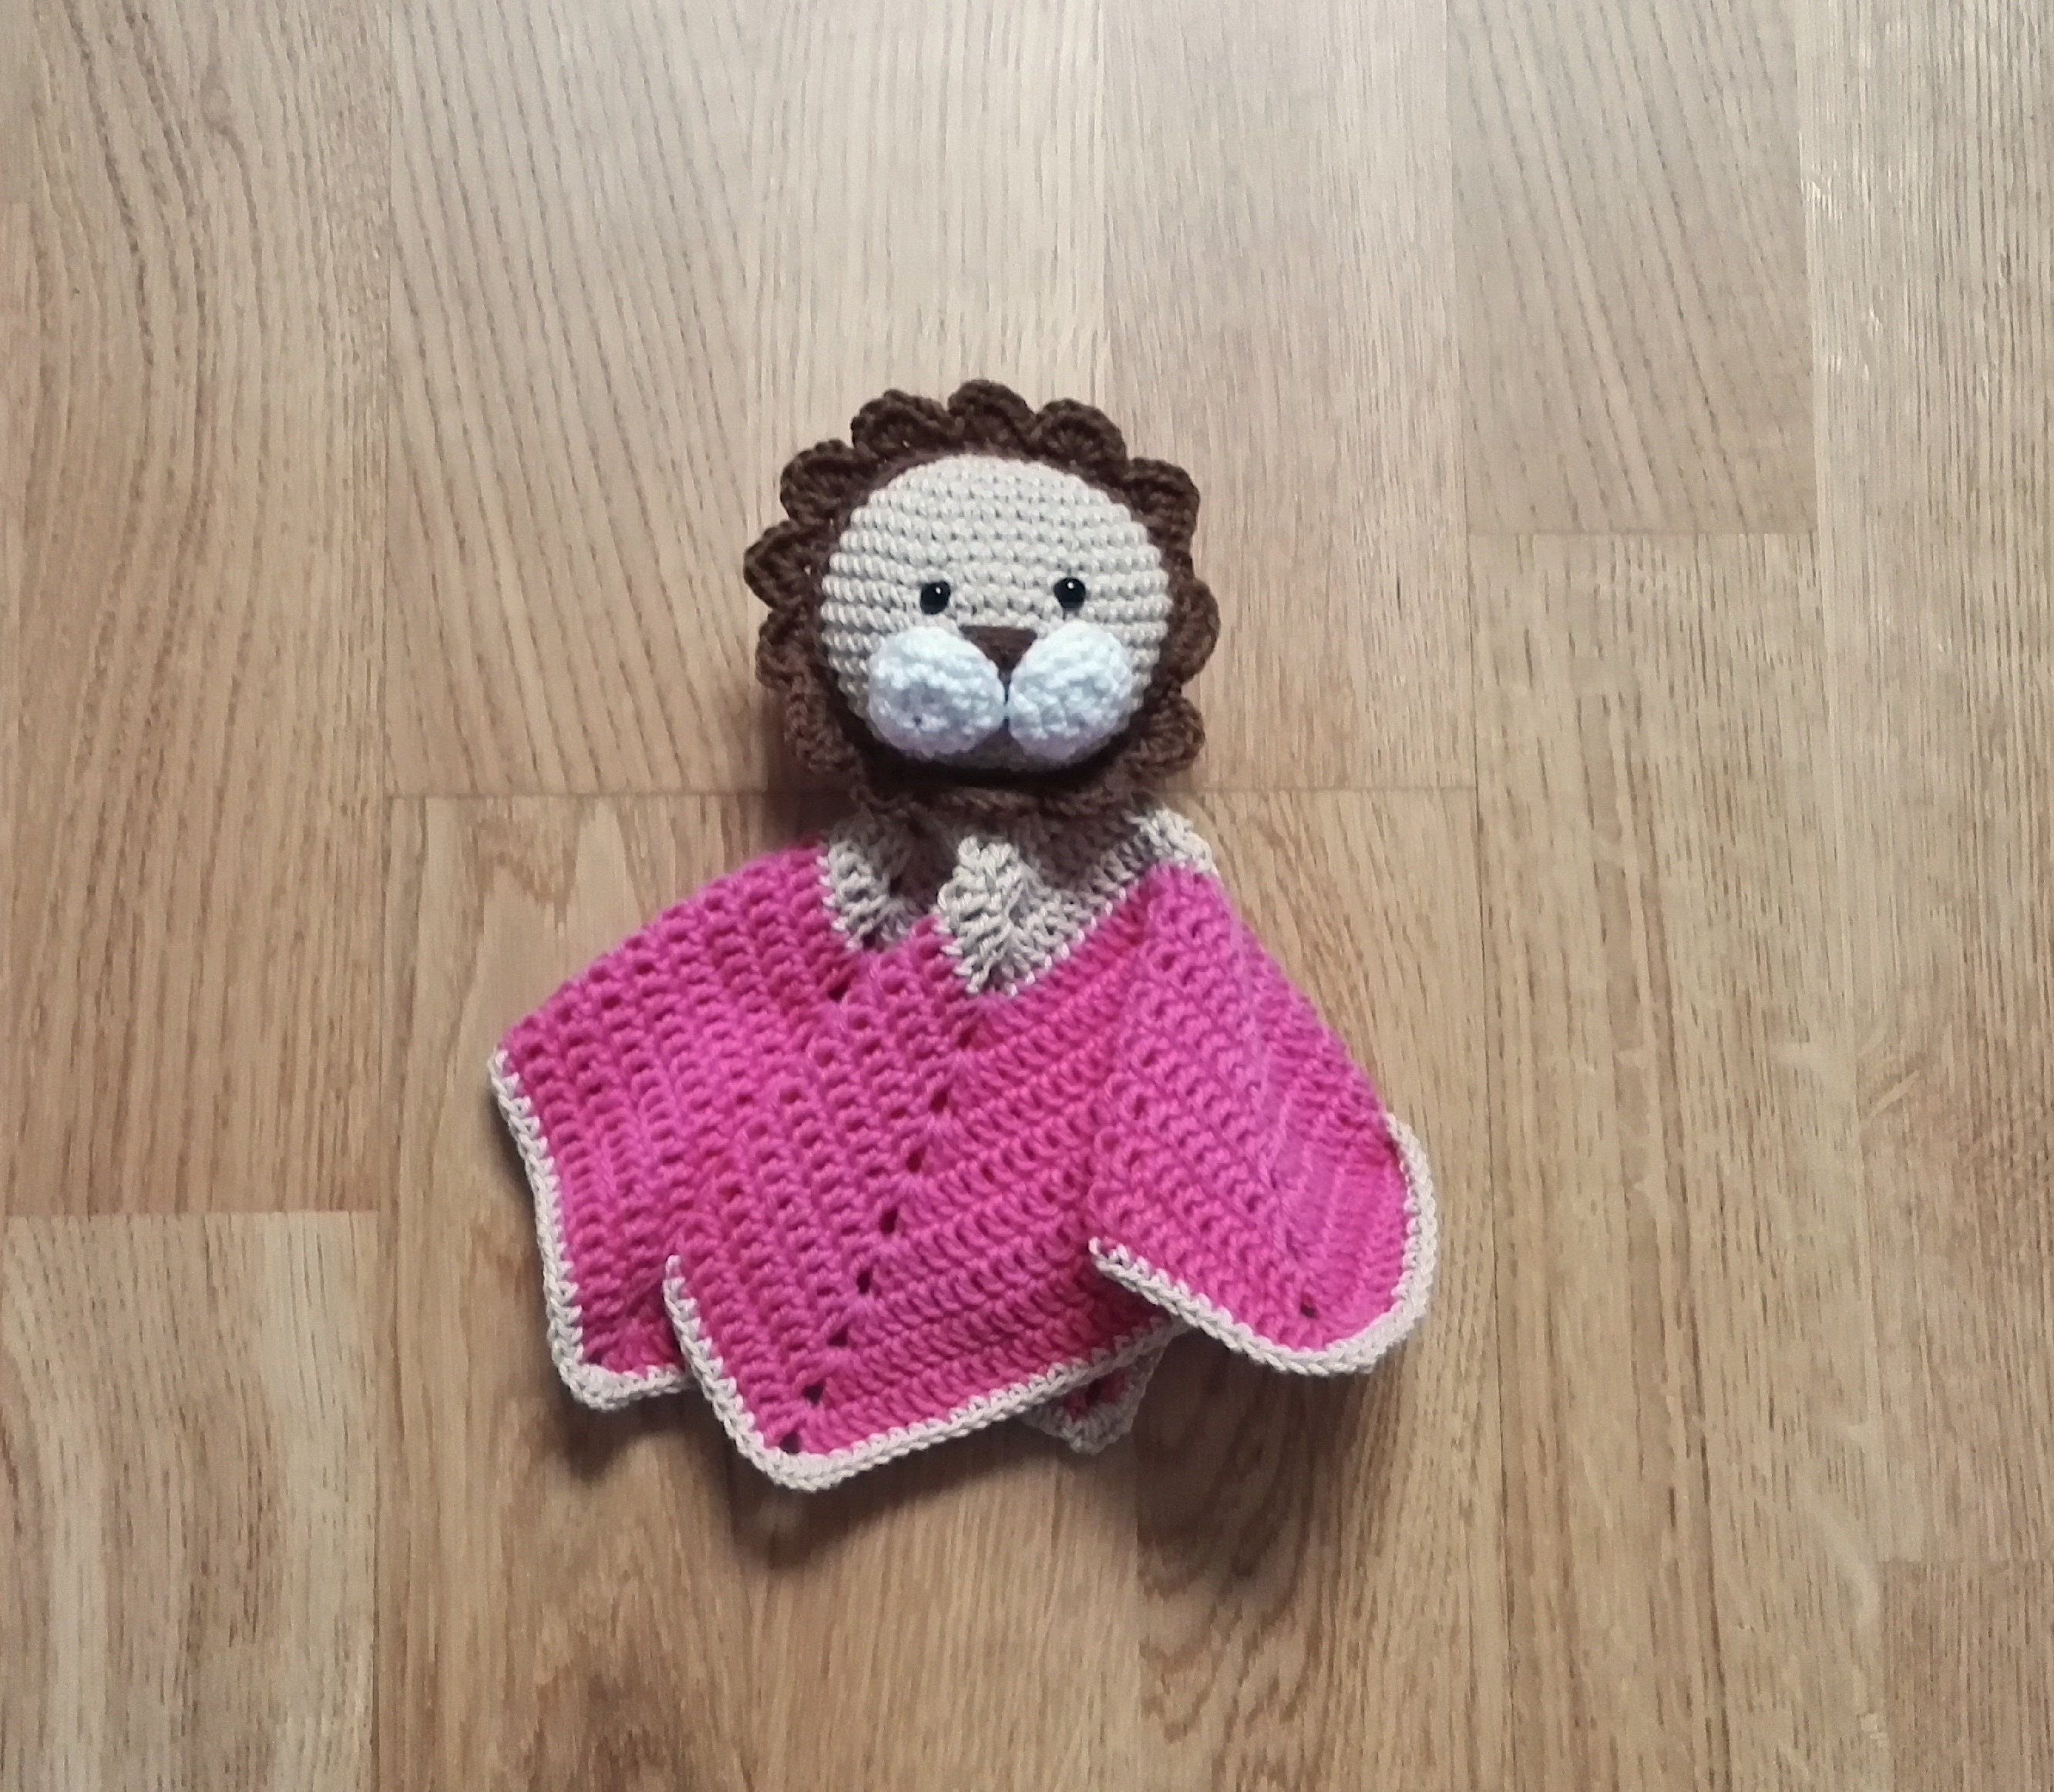 Crochet Security Blanket Lion Lovey Toddler Toy Snuggle